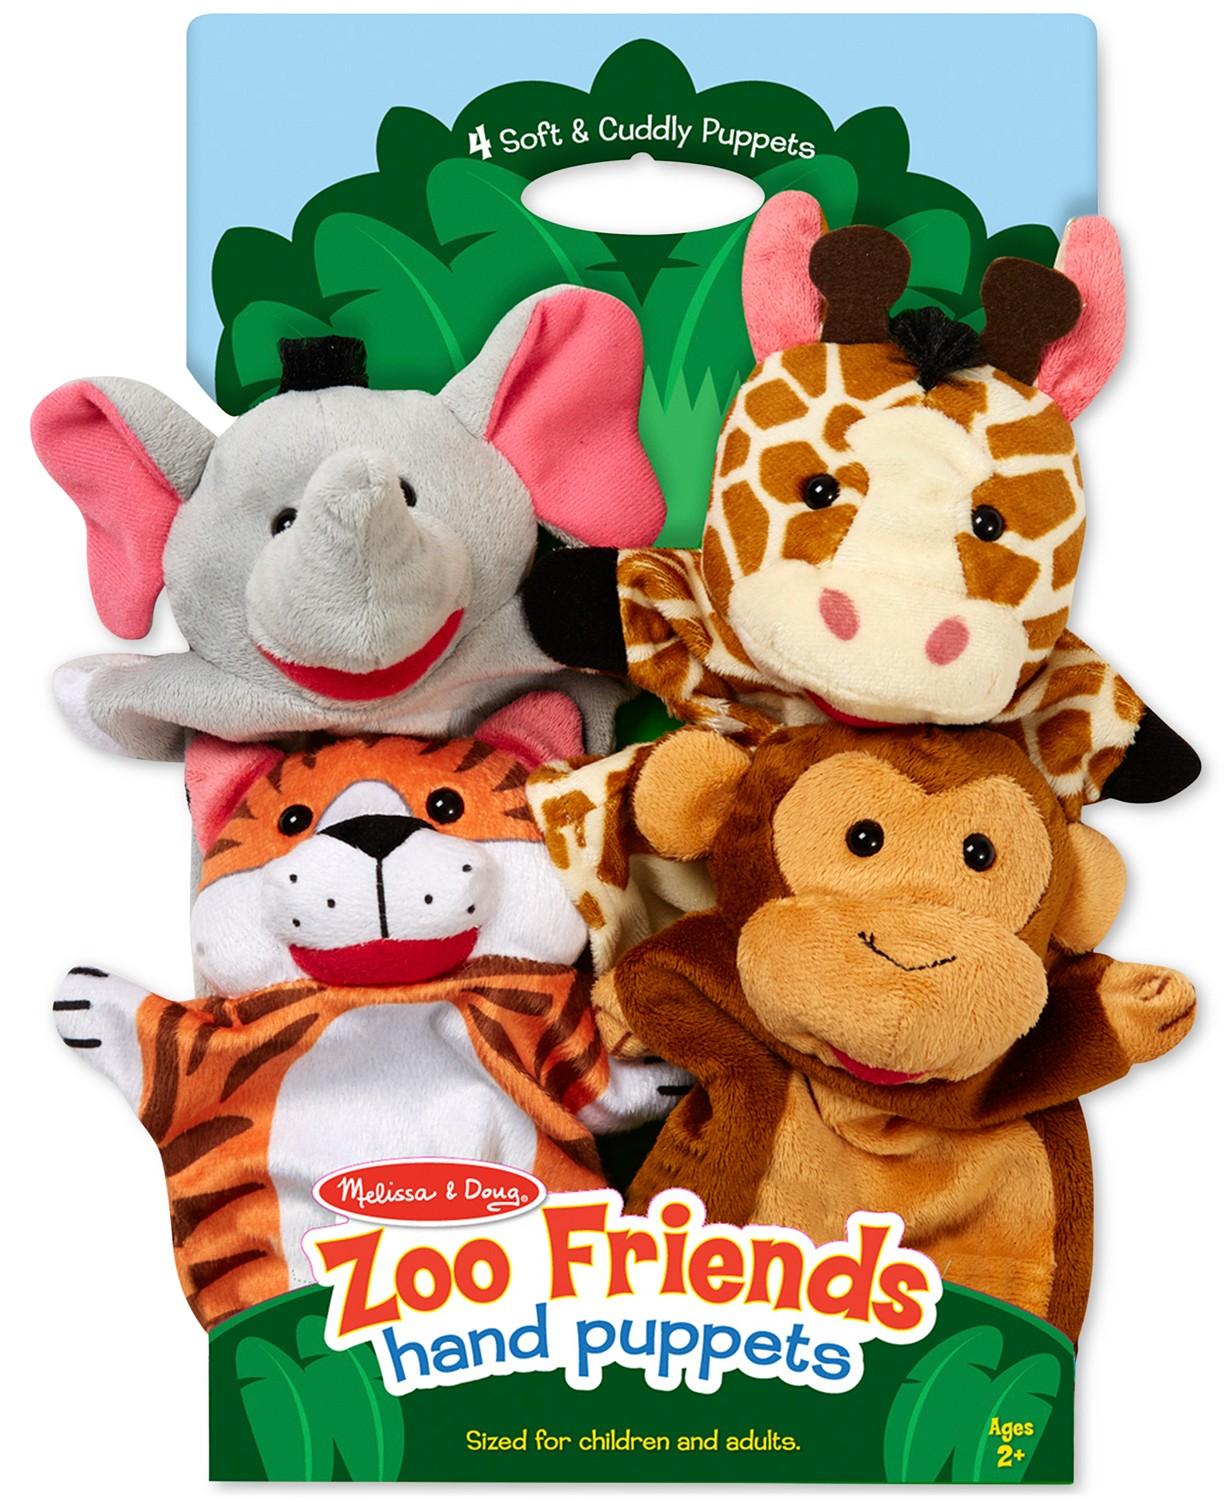 A set of hand puppets for toddlers.